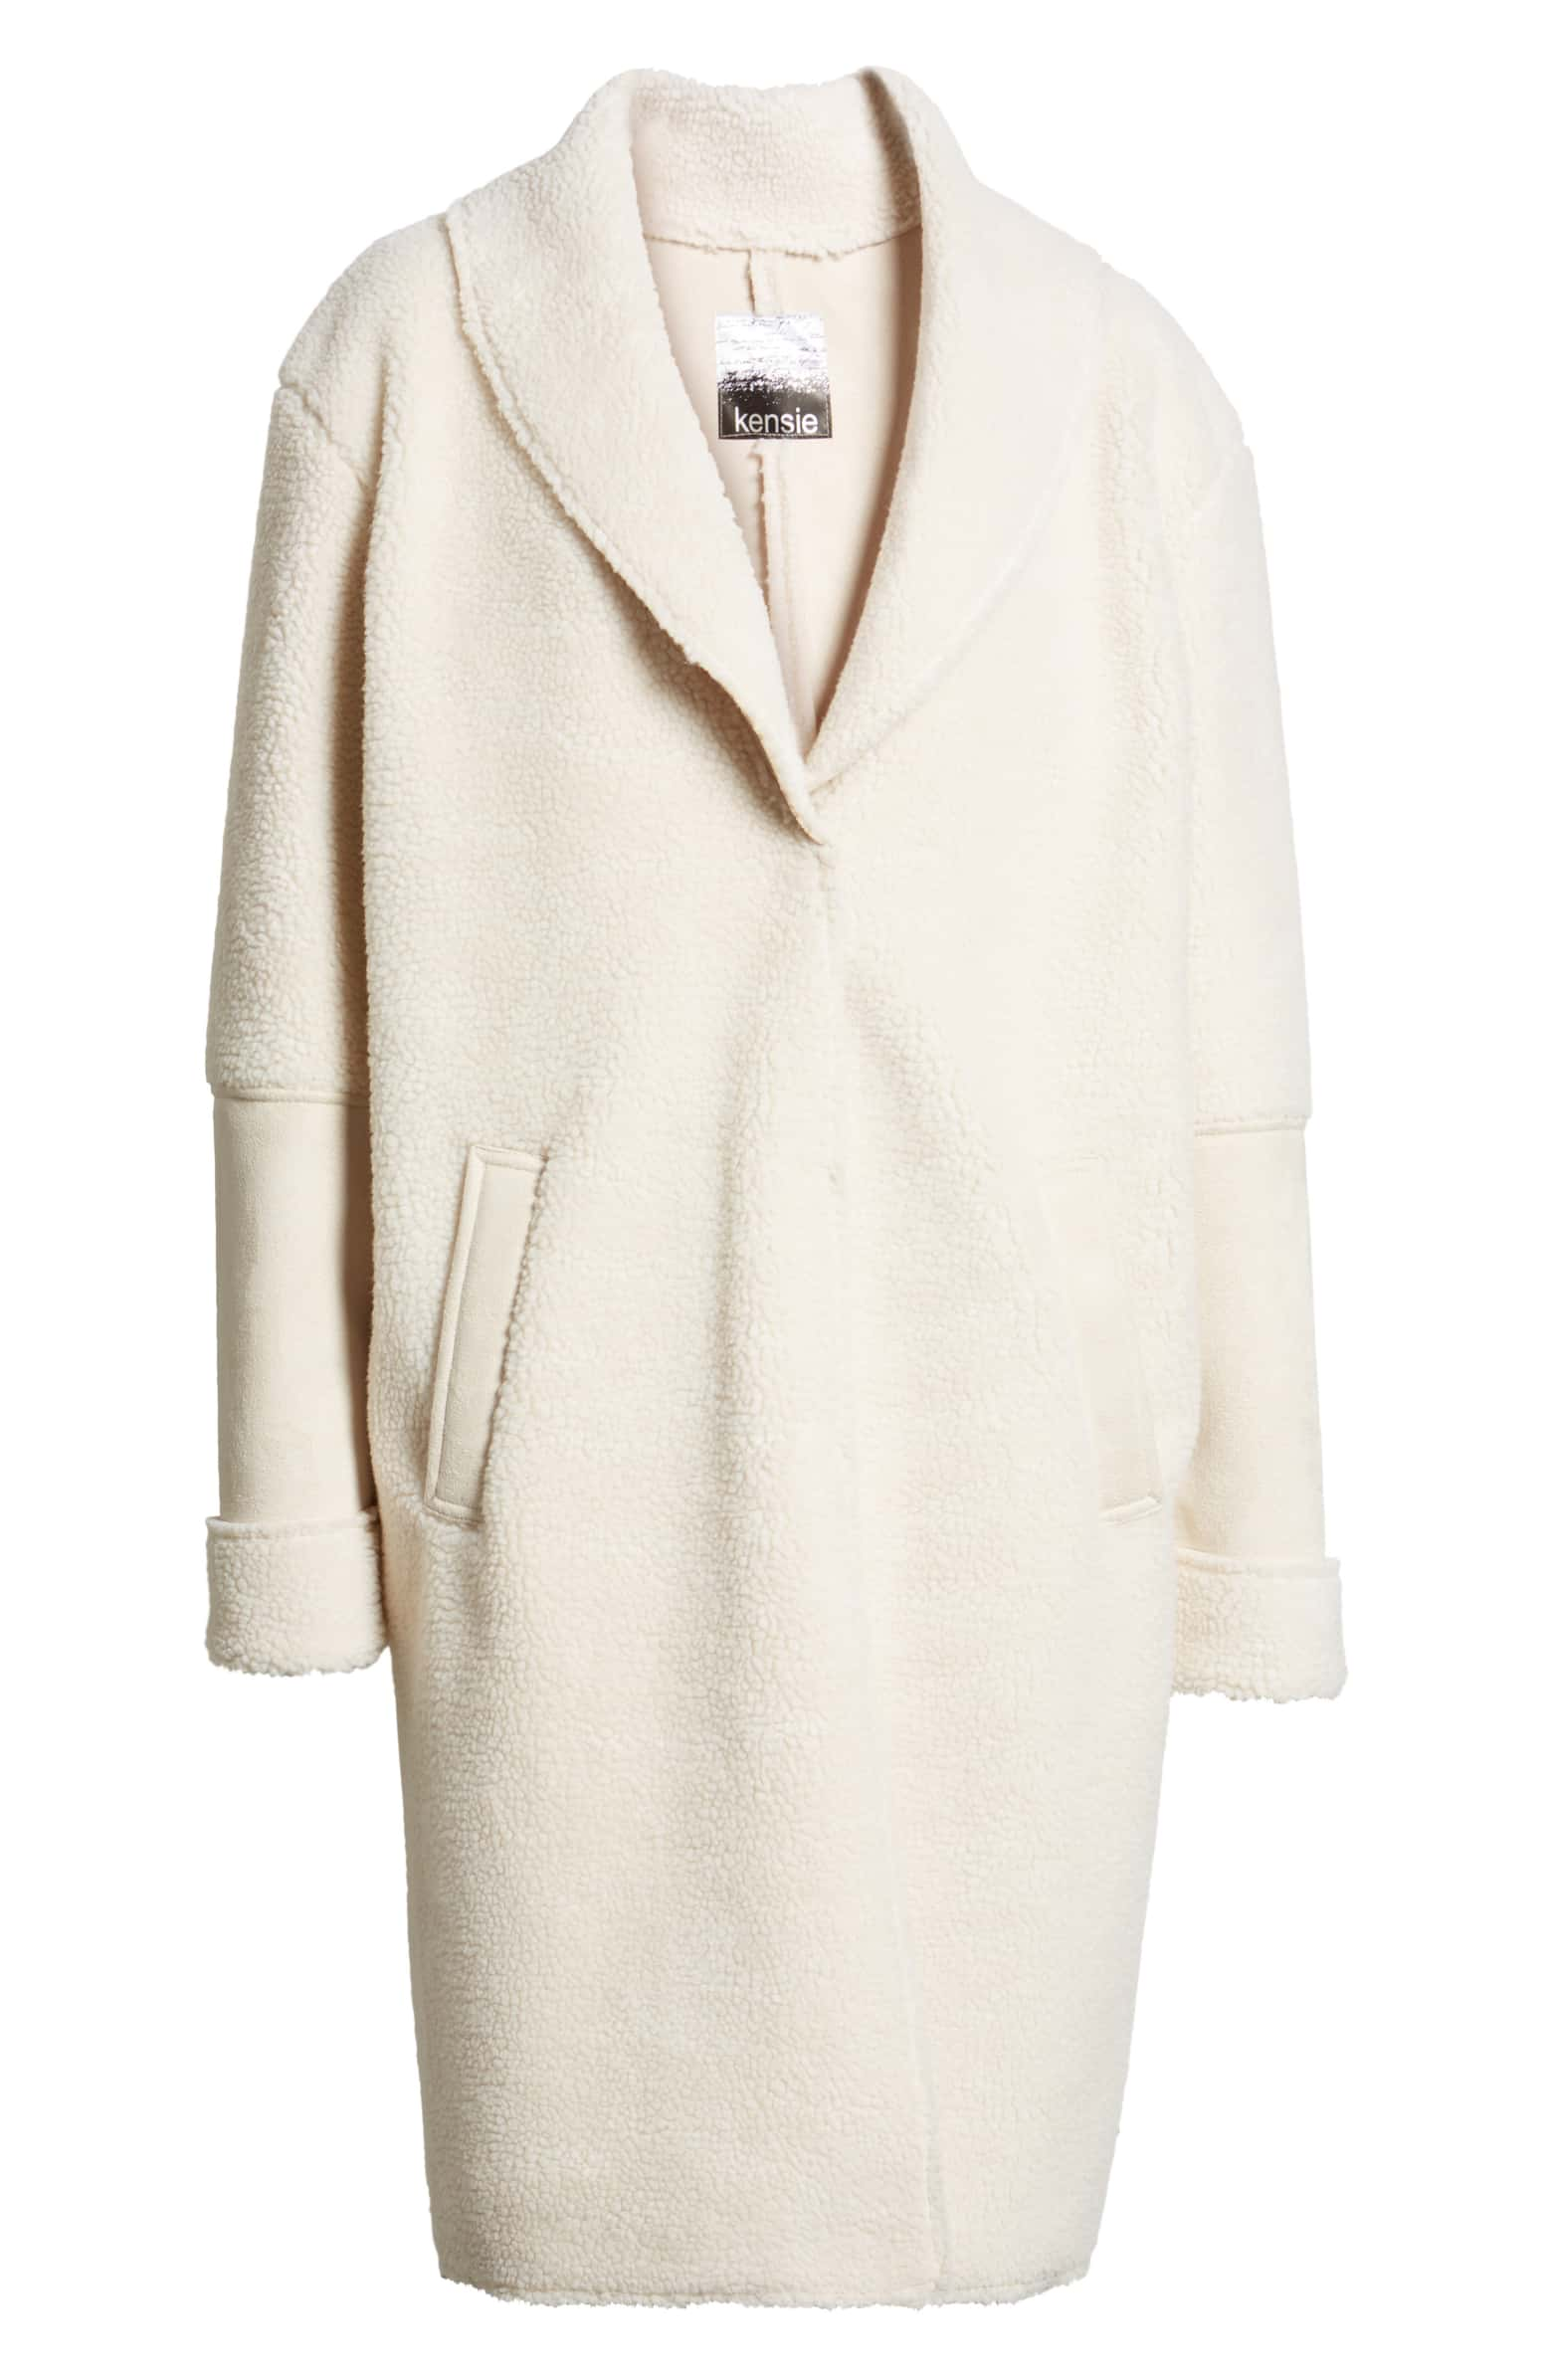 kensie Shearling Coat - You knew it was coming. I have a weakness for coats, and I am loving the fit of this one - hoping to get my hands on this piece soon.